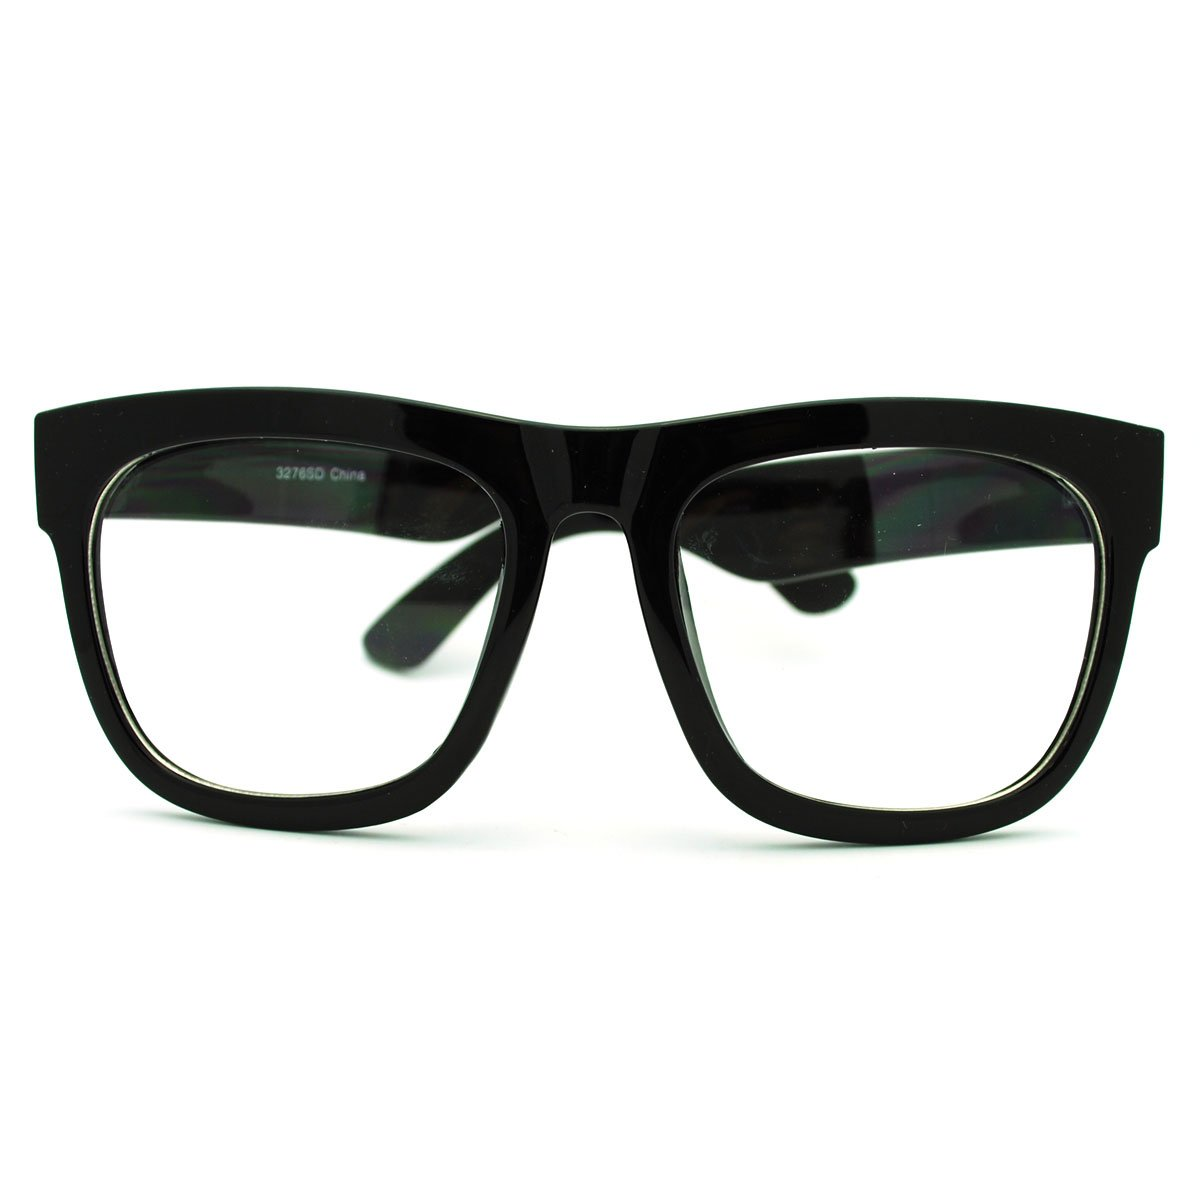 a1211f1a6ac Amazon.com  Black Oversized Square Glasses Thick Horn Rim Clear Lens Frame   Clothing